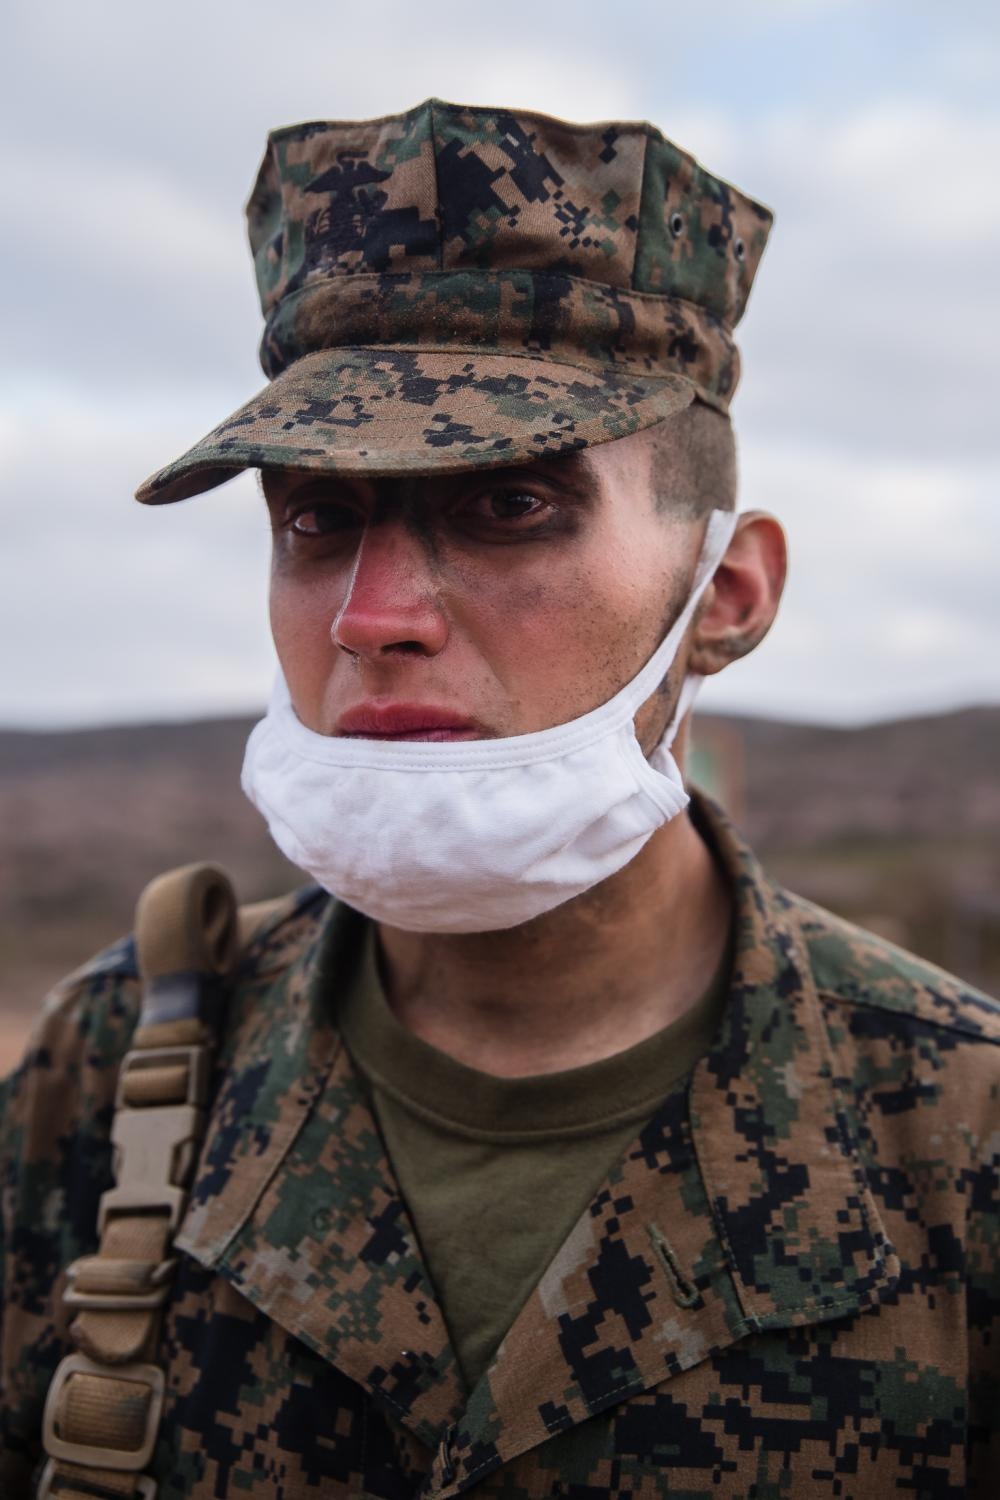 Noah Vanhoose, 18 years old from Indiana completed the three day crucible at Camp Pendleton. Vanhoose says he has come a long way and is thankful for his parents supporting him.